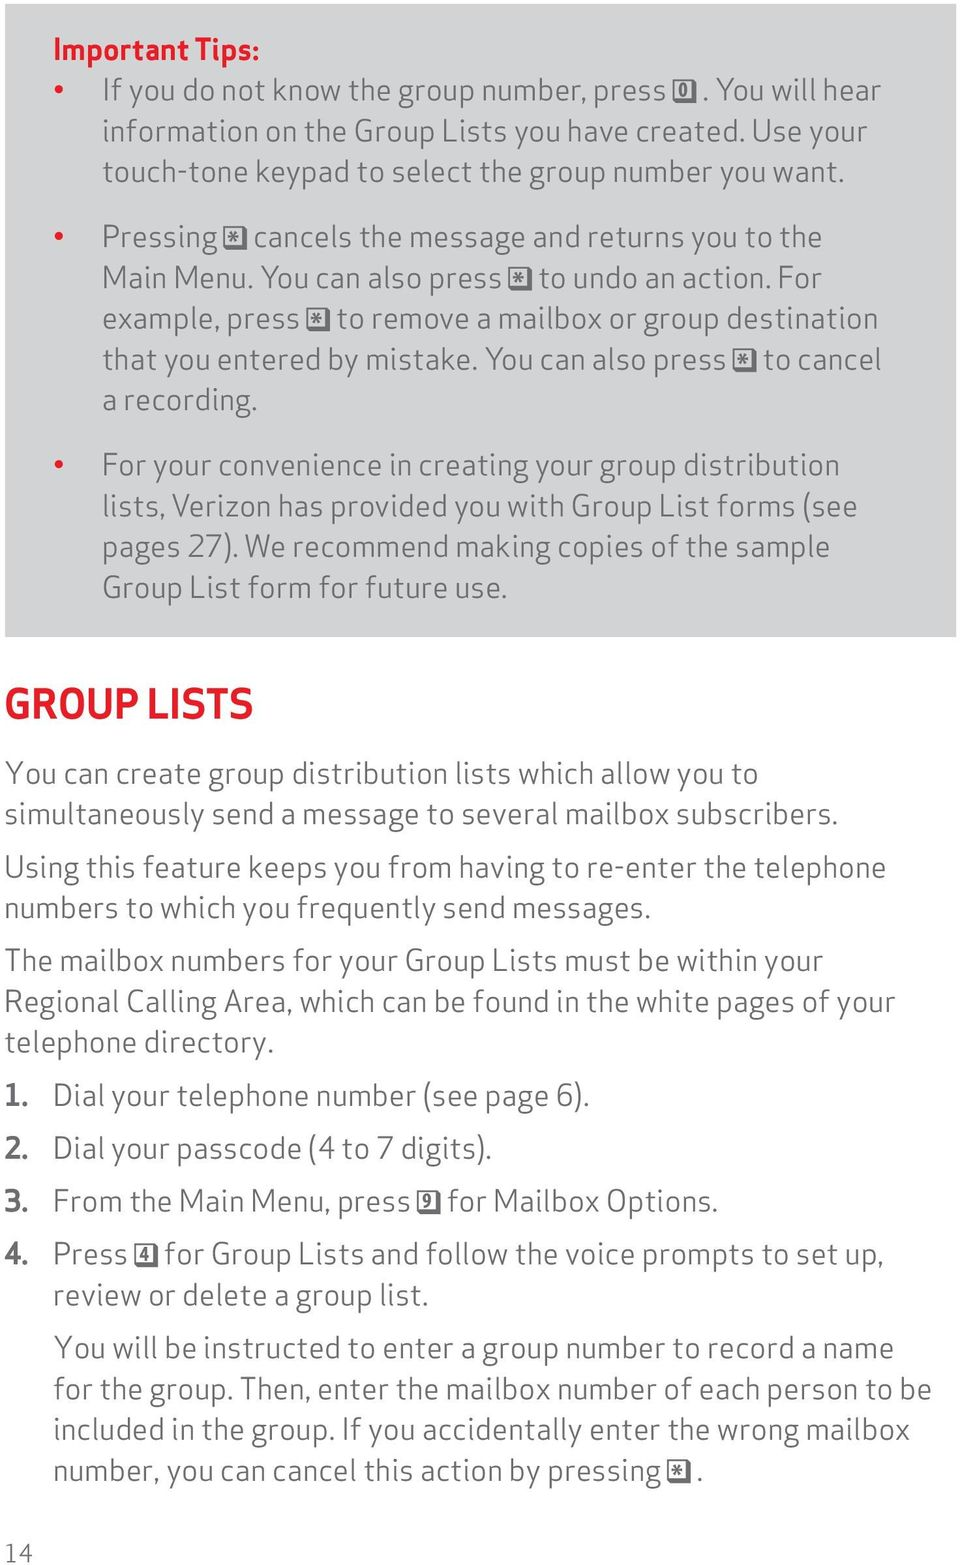 You can also press to cancel a recording. For your convenience in creating your group distribution lists, Verizon has provided you with Group List forms (see pages 27).